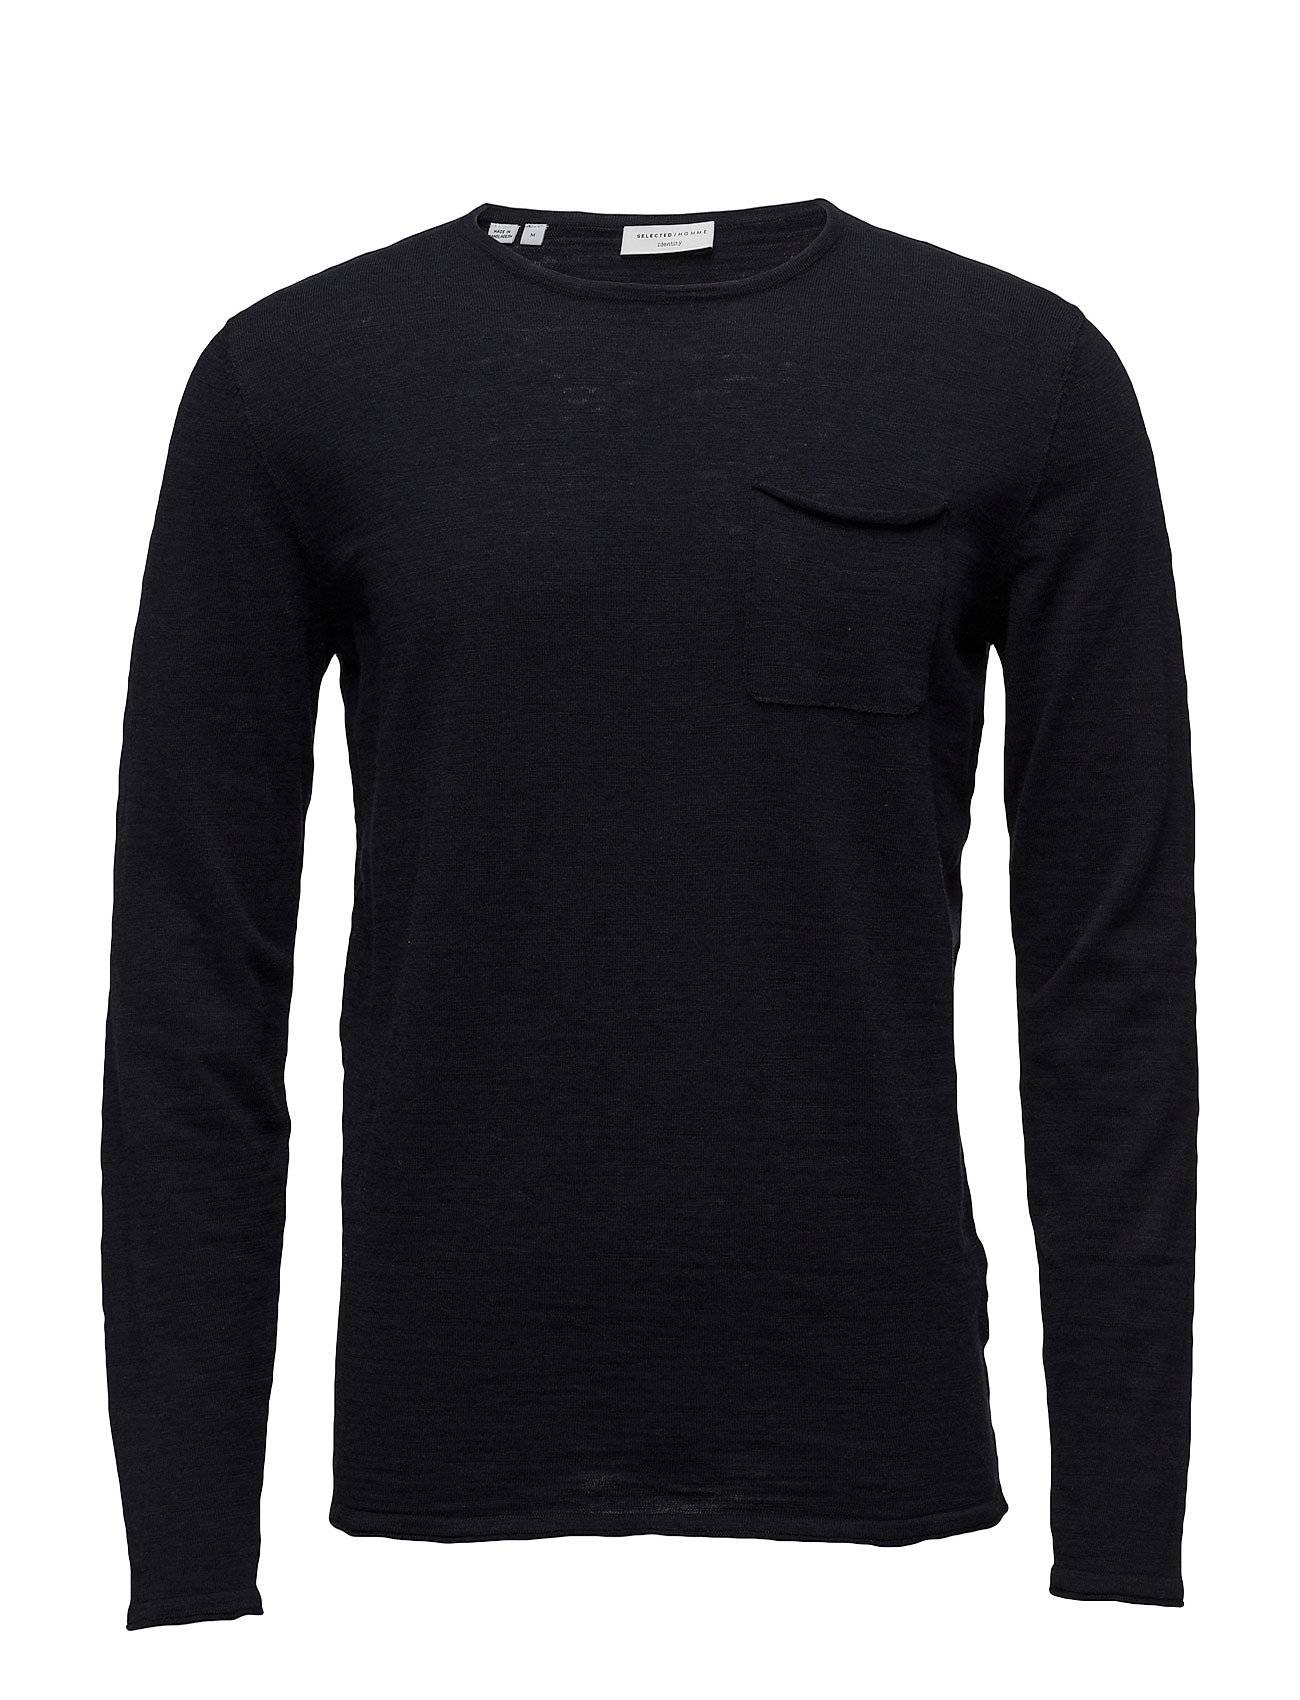 Selected Homme Shdhaiden Crew Neck